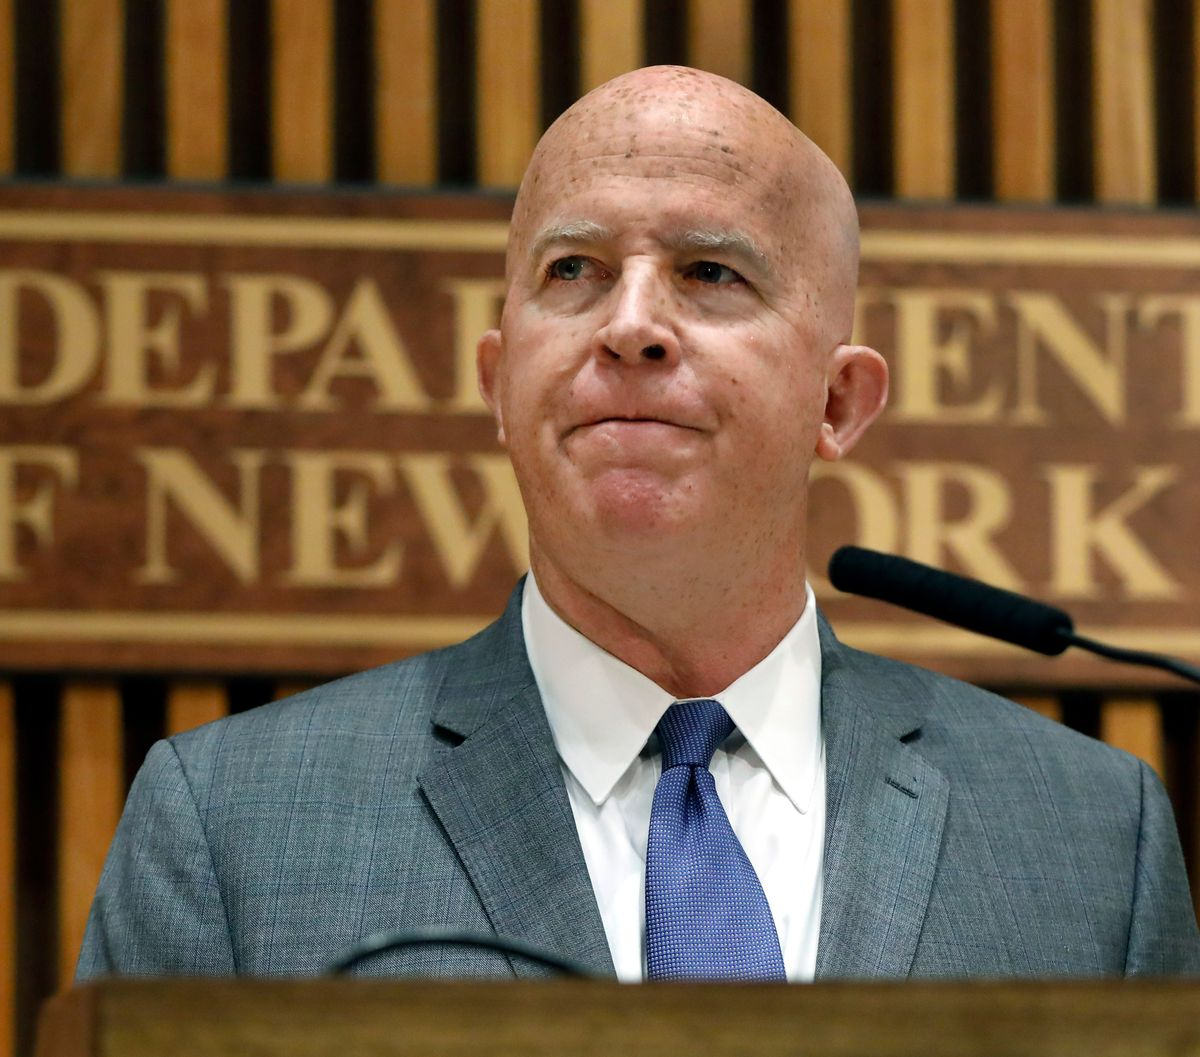 New York City police commissioner to step down